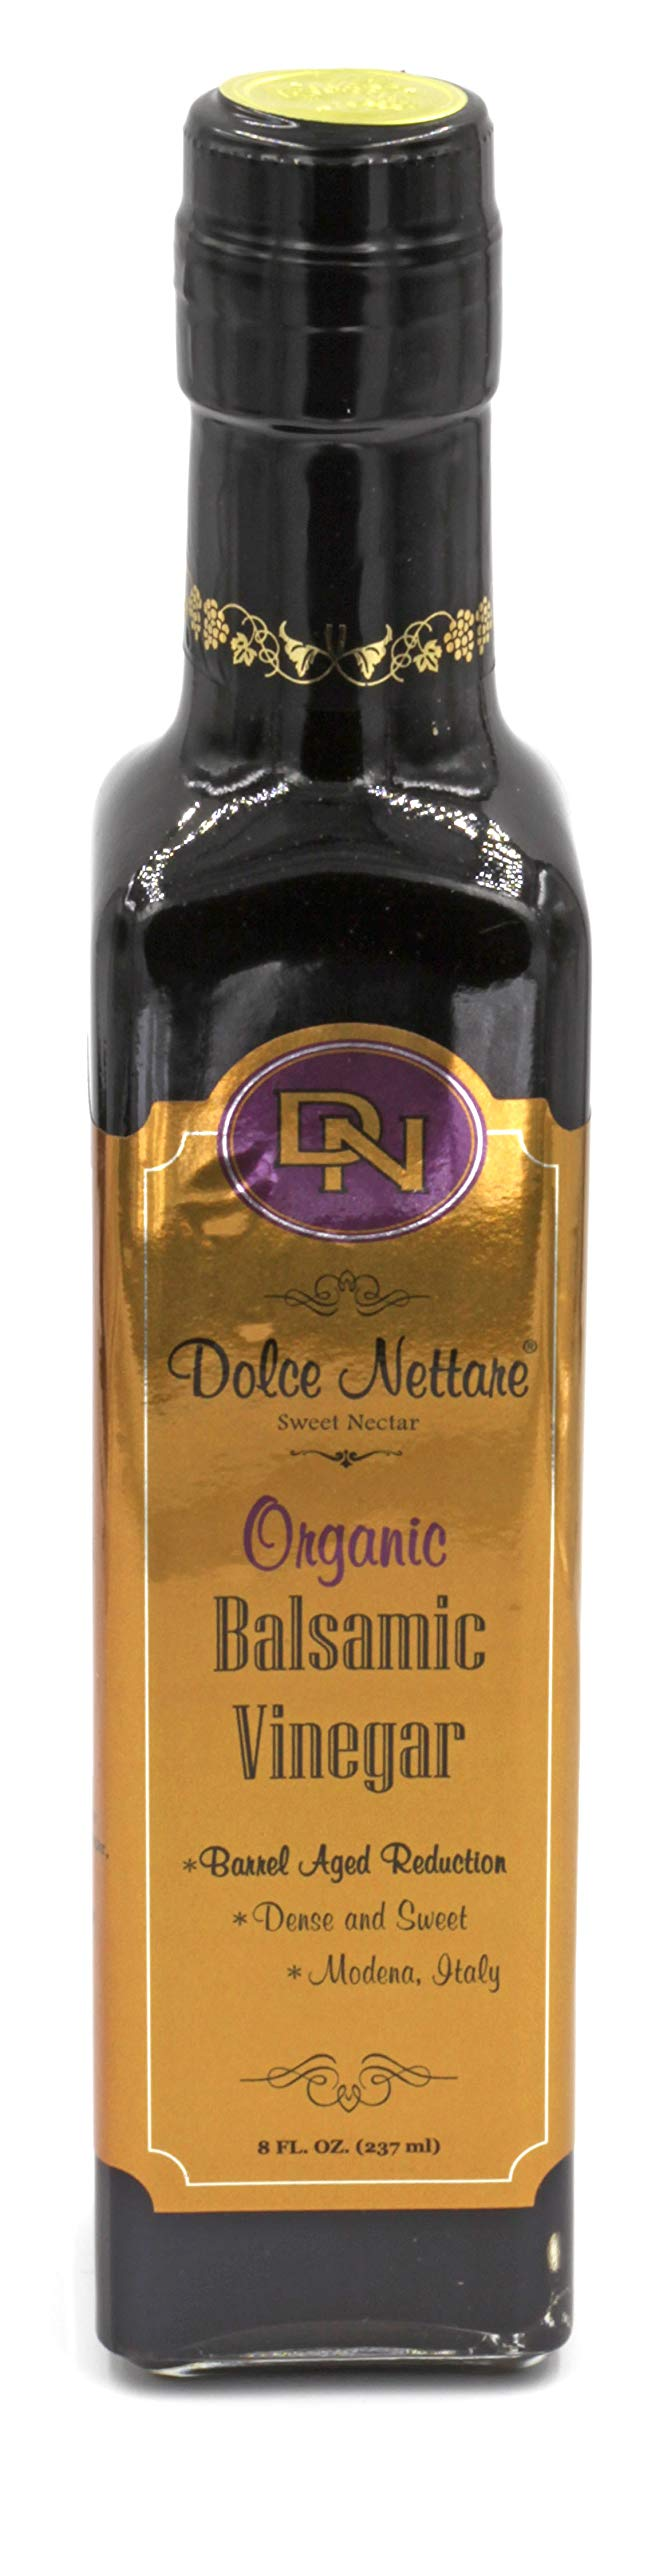 Dolce Nettare ''Thick Organic'' Balsamic Vinegar (Barrel Aged) High Density 1.33, Imported from Modena, Italy...(250 ml) Includes Free Deluxe Pour Spout by Dolce Nettare